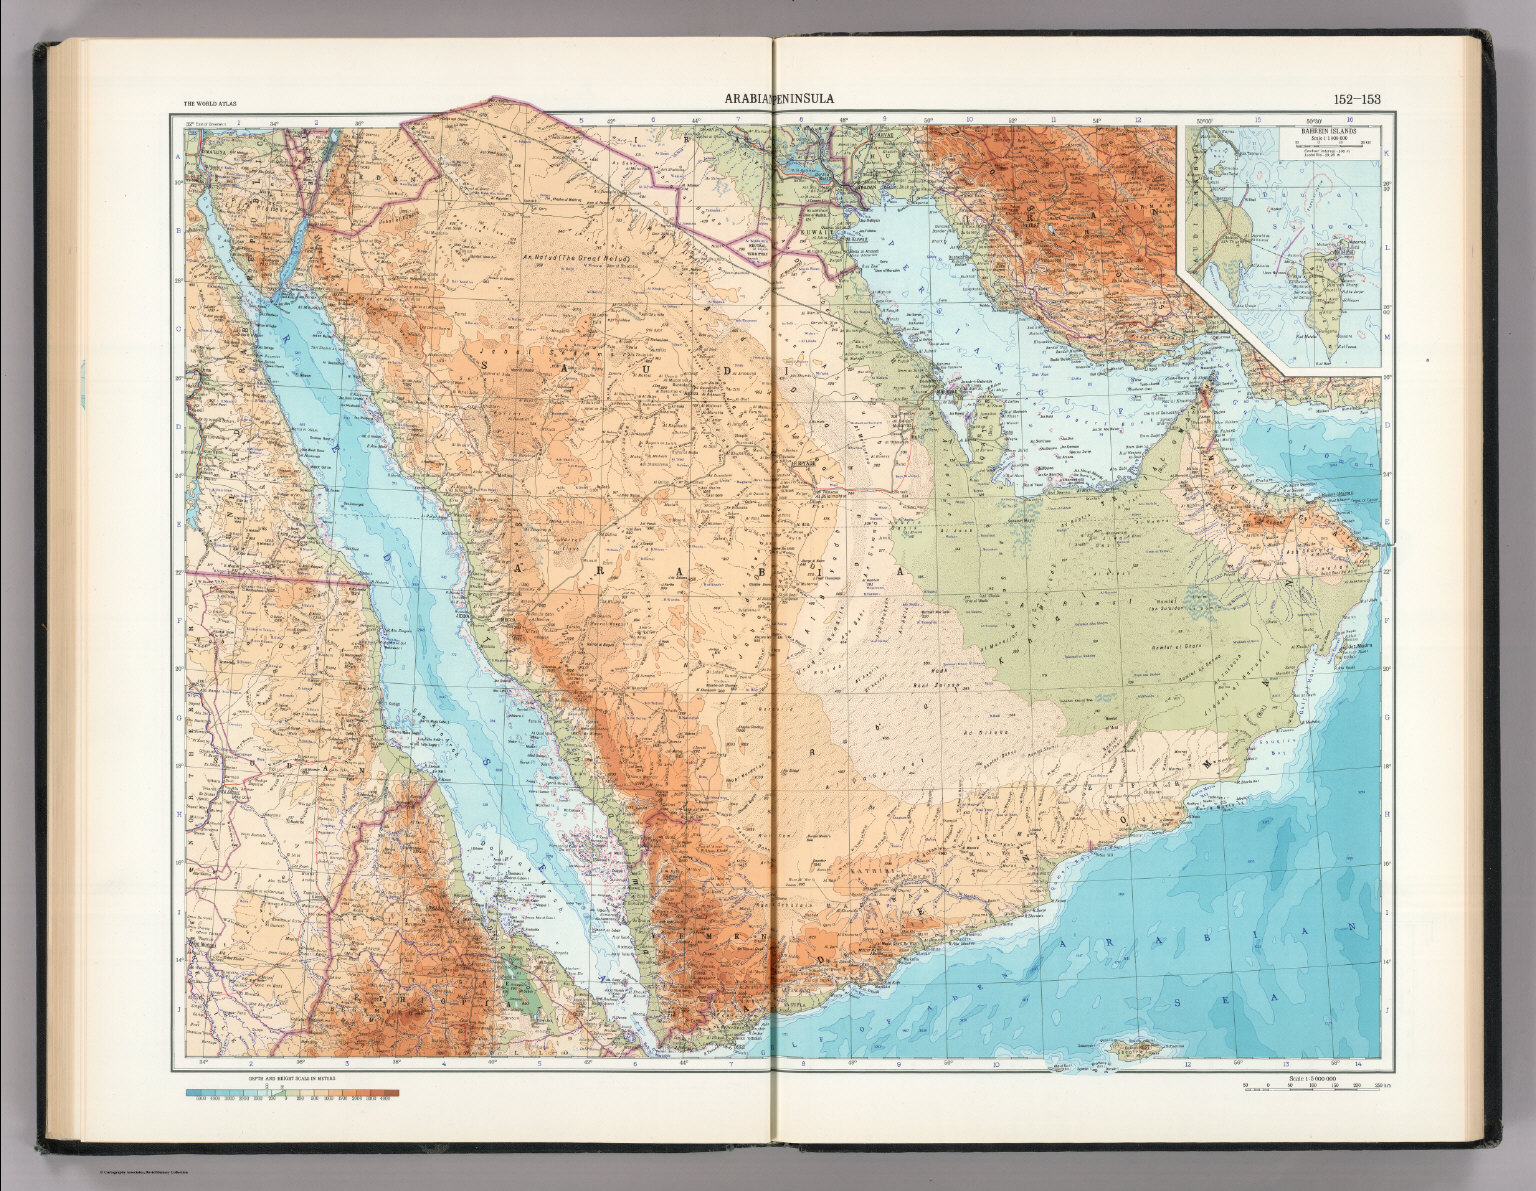 152 153 arabian peninsula bahrein bahrain islands the world bahrein bahrain islands the world atlas gumiabroncs Image collections